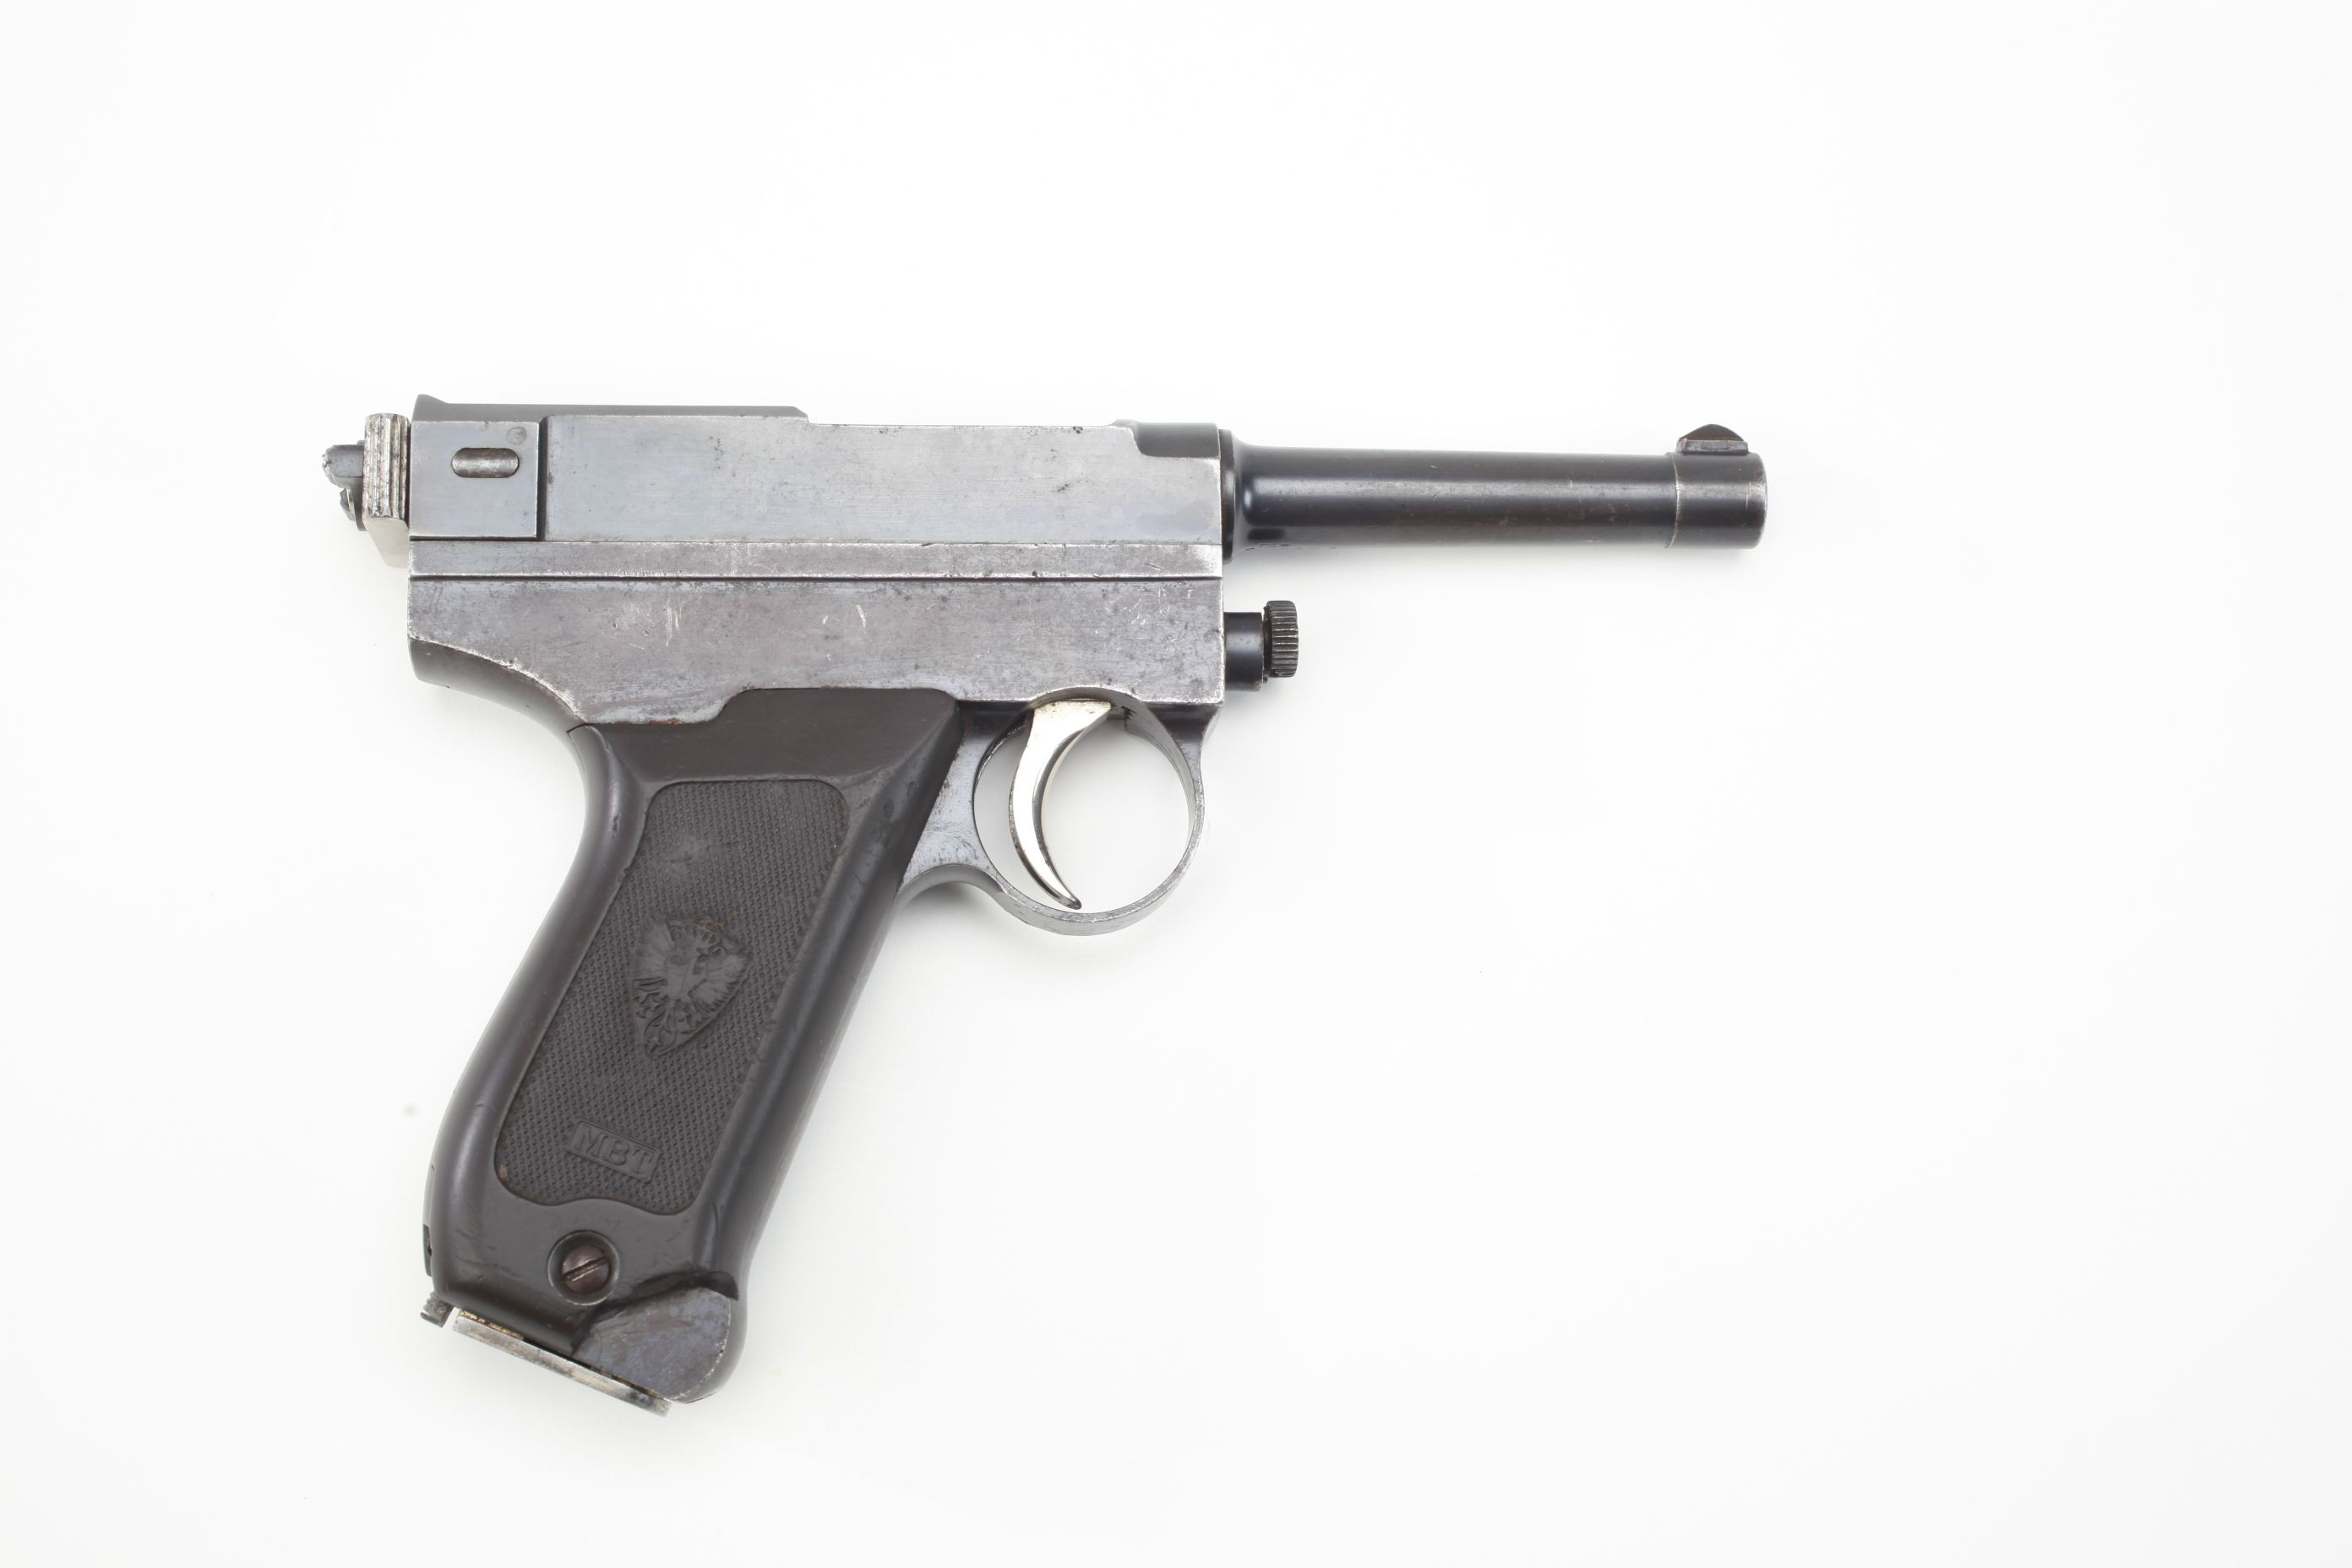 Glisenti Model 1910 Semi Automatic Pistol